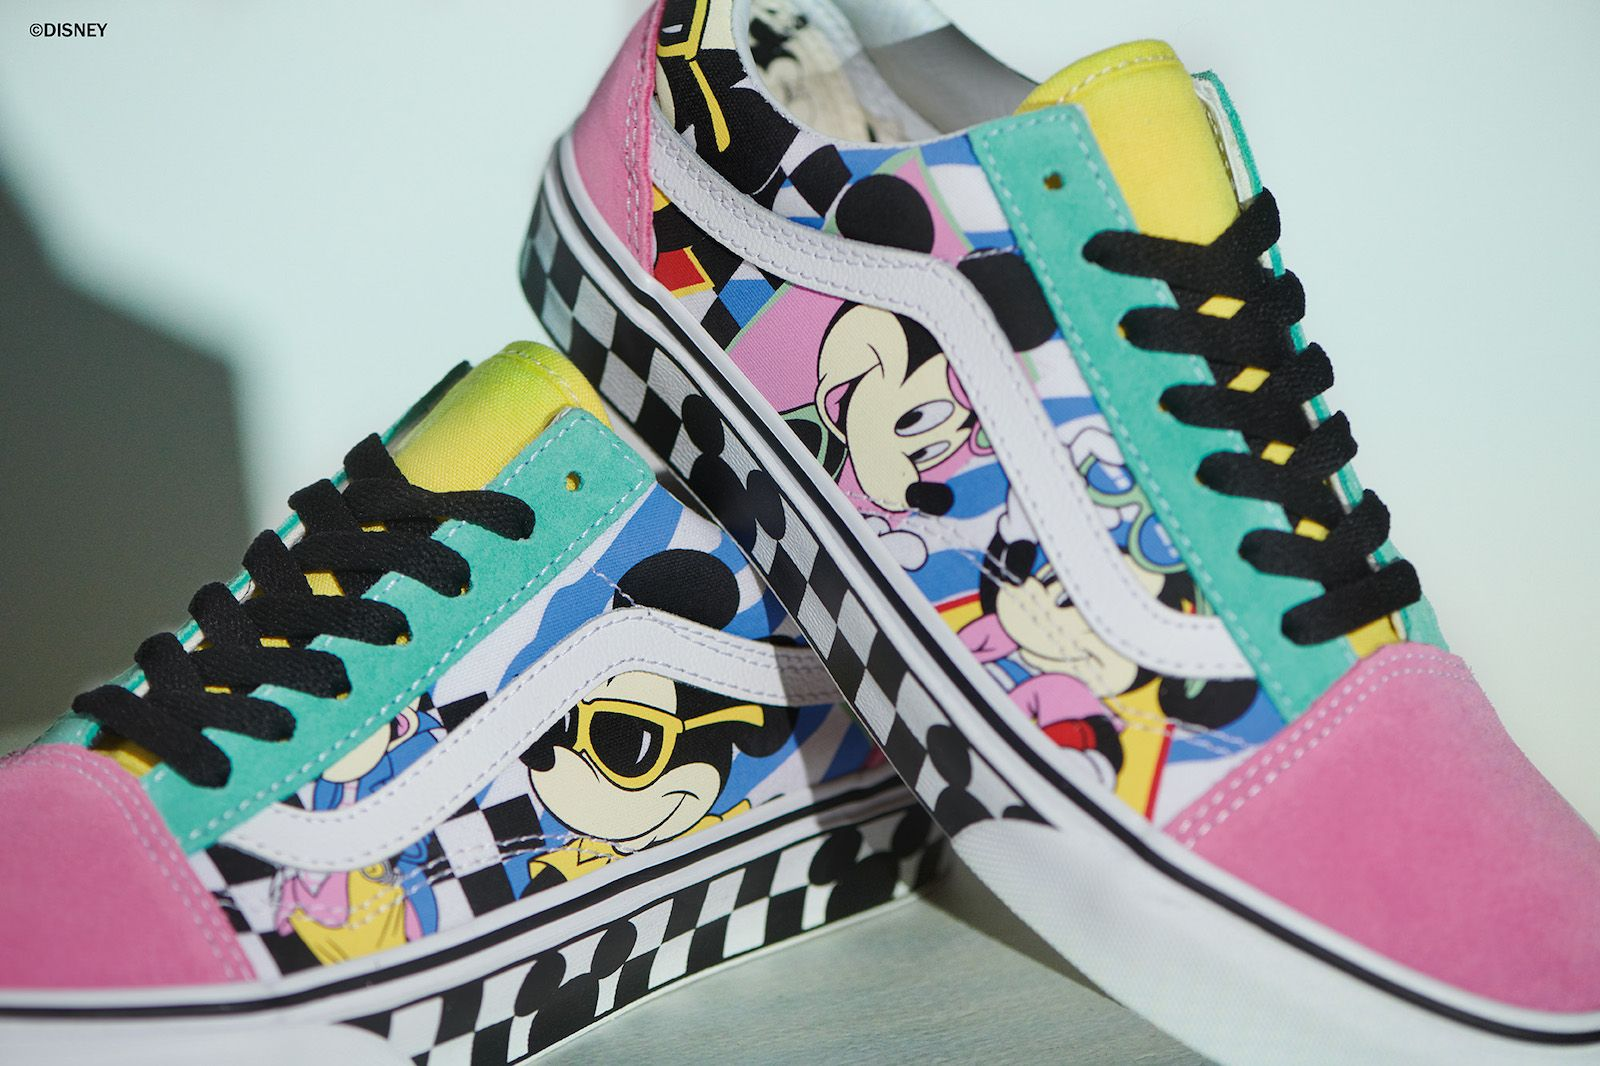 Vans is back with another Disney collection! This time, they